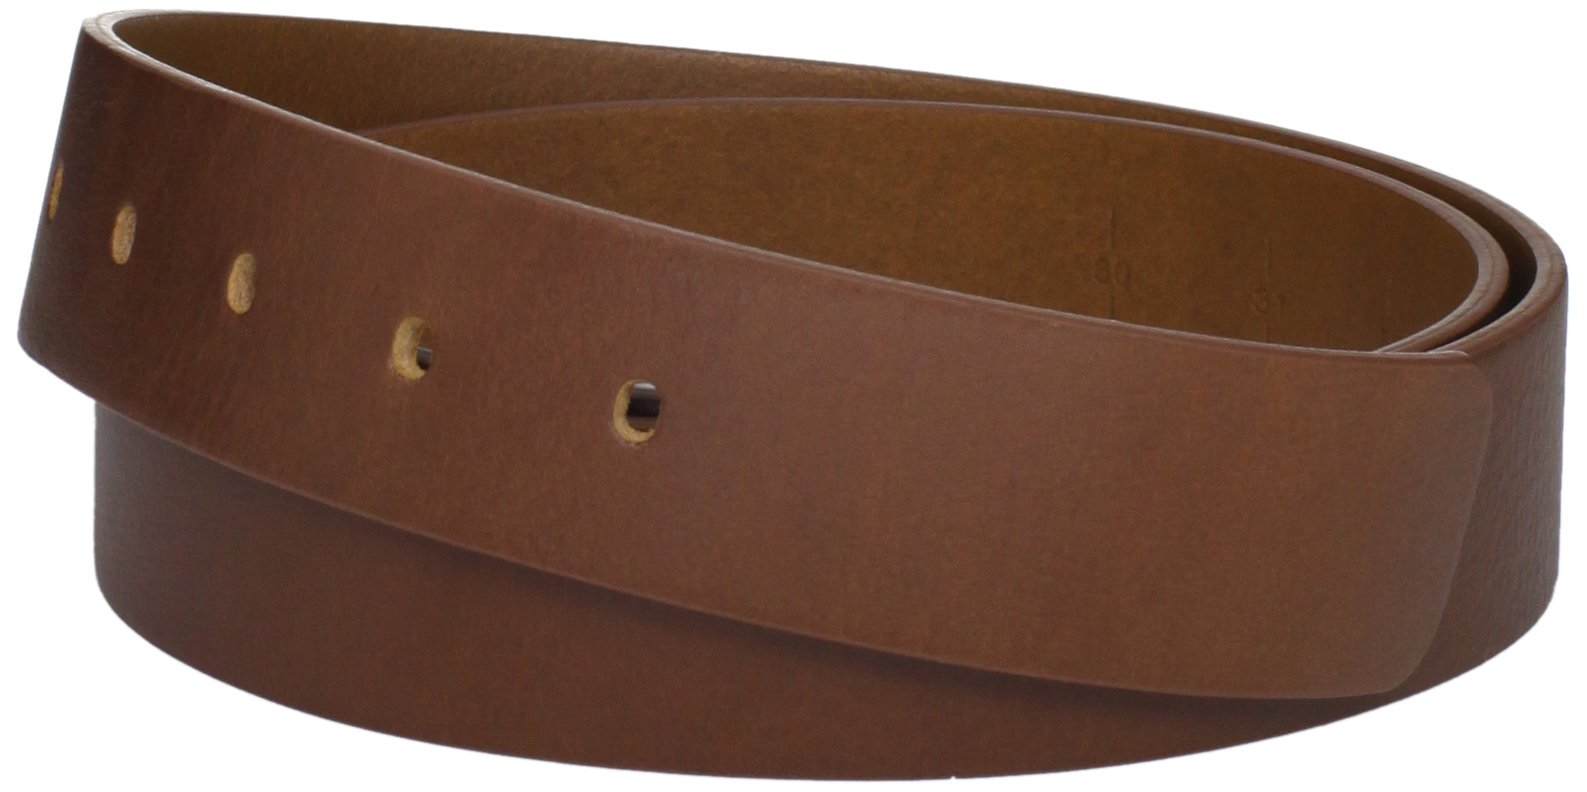 The White Ball Men's Genuine Italian Leather 40mm Strap only for Pride Buckle, Tan